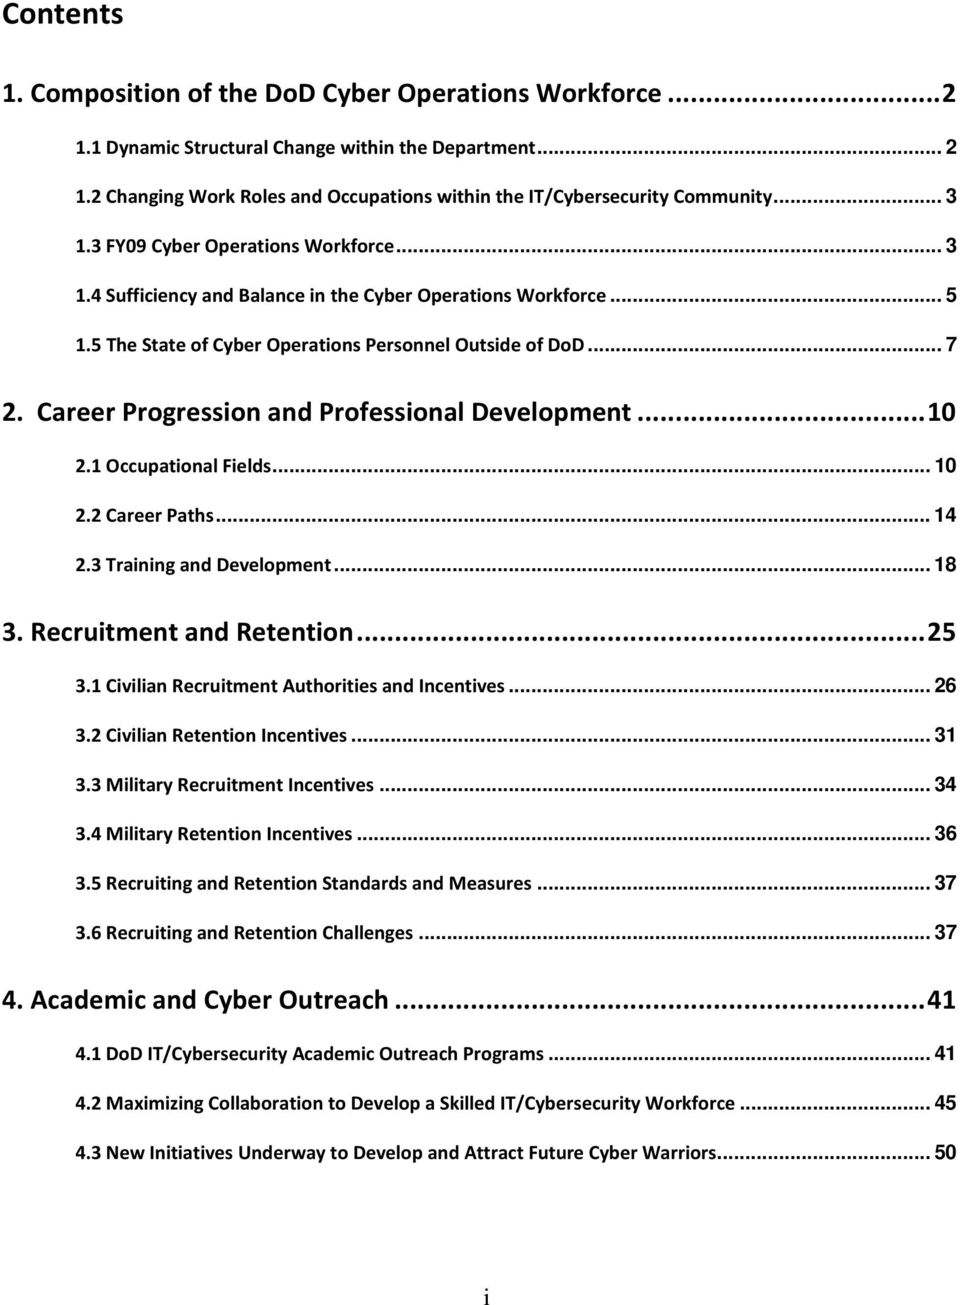 Career Progression and Professional Development... 10 2.1 Occupational Fields... 10 2.2 Career Paths... 14 2.3 Training and Development... 18 3. Recruitment and Retention... 25 3.